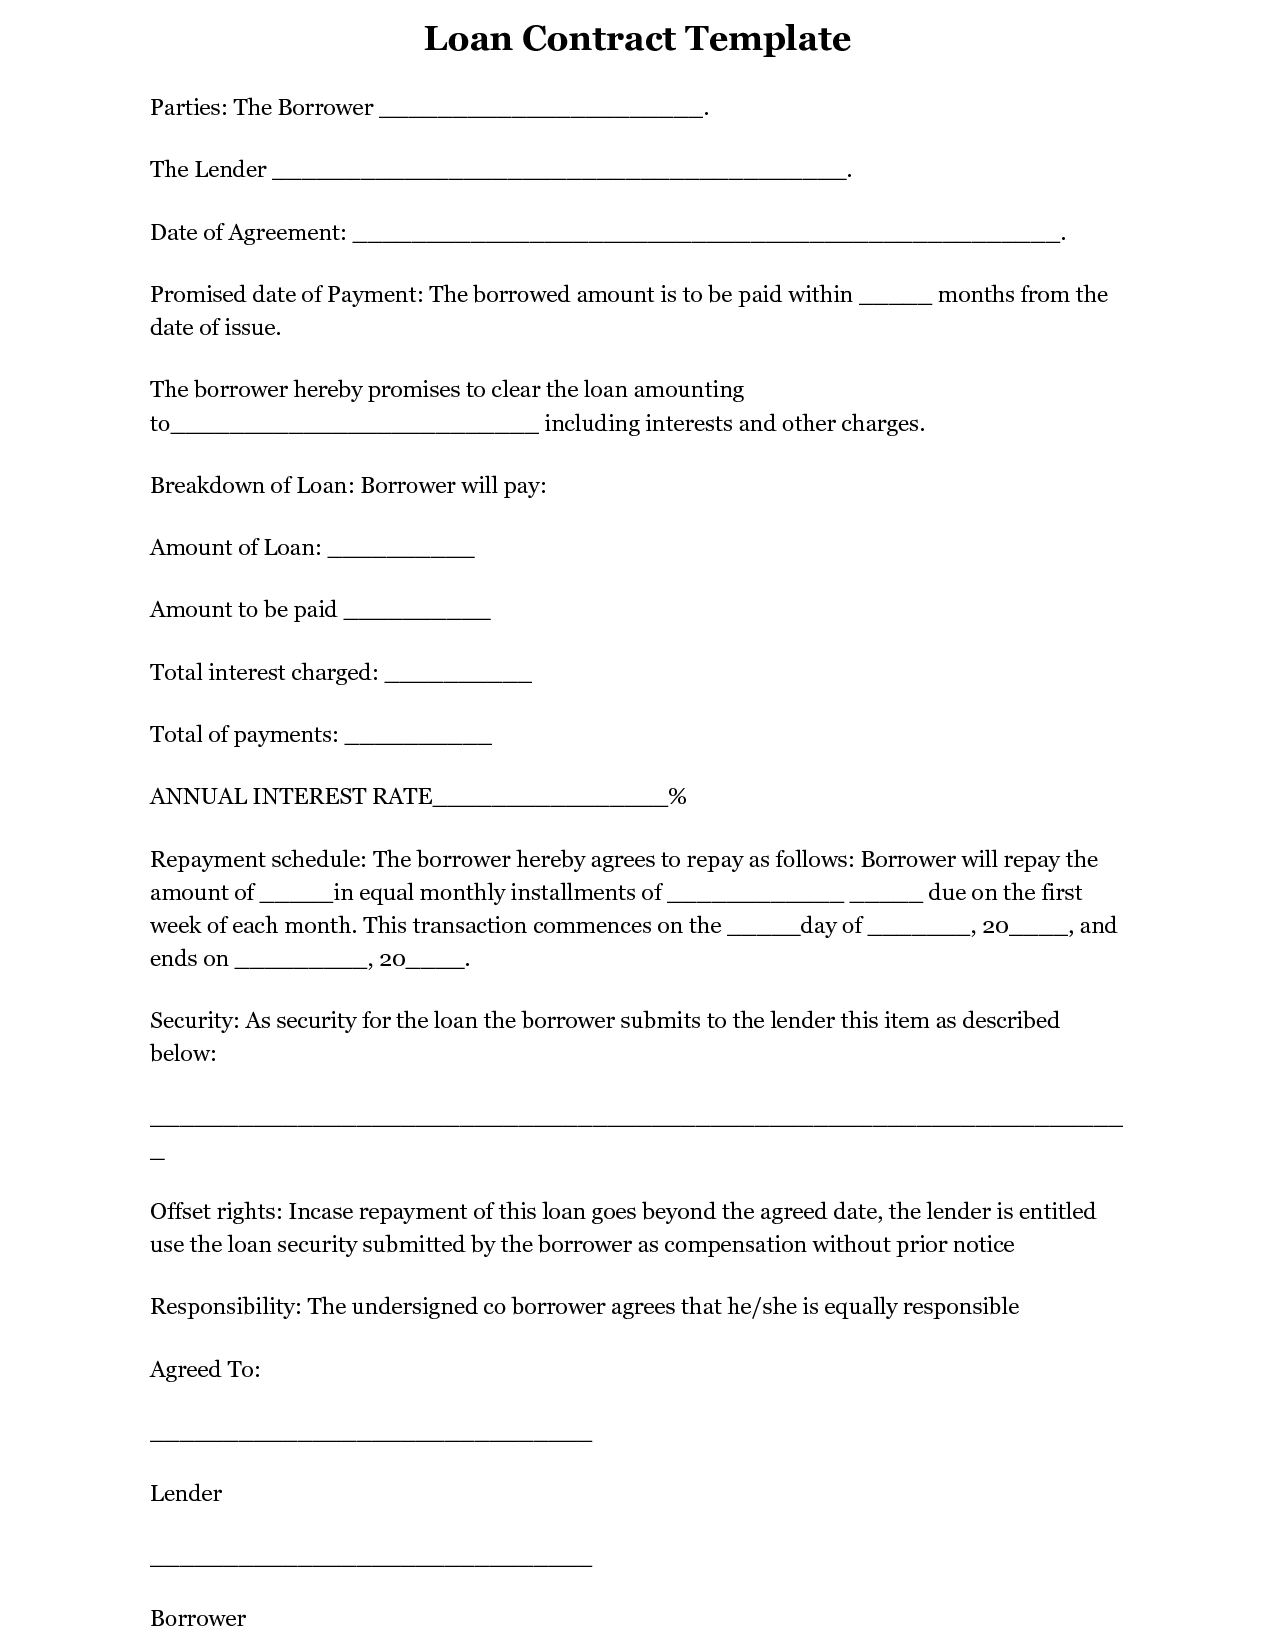 Exceptional Simple Loan Agreement Form Free Loan Contract Template 26 Examples In Word  Pdf Free, Commercial Loan Agreement Template Loan Agreement Form Template,  ...  Loan Contract Template Word